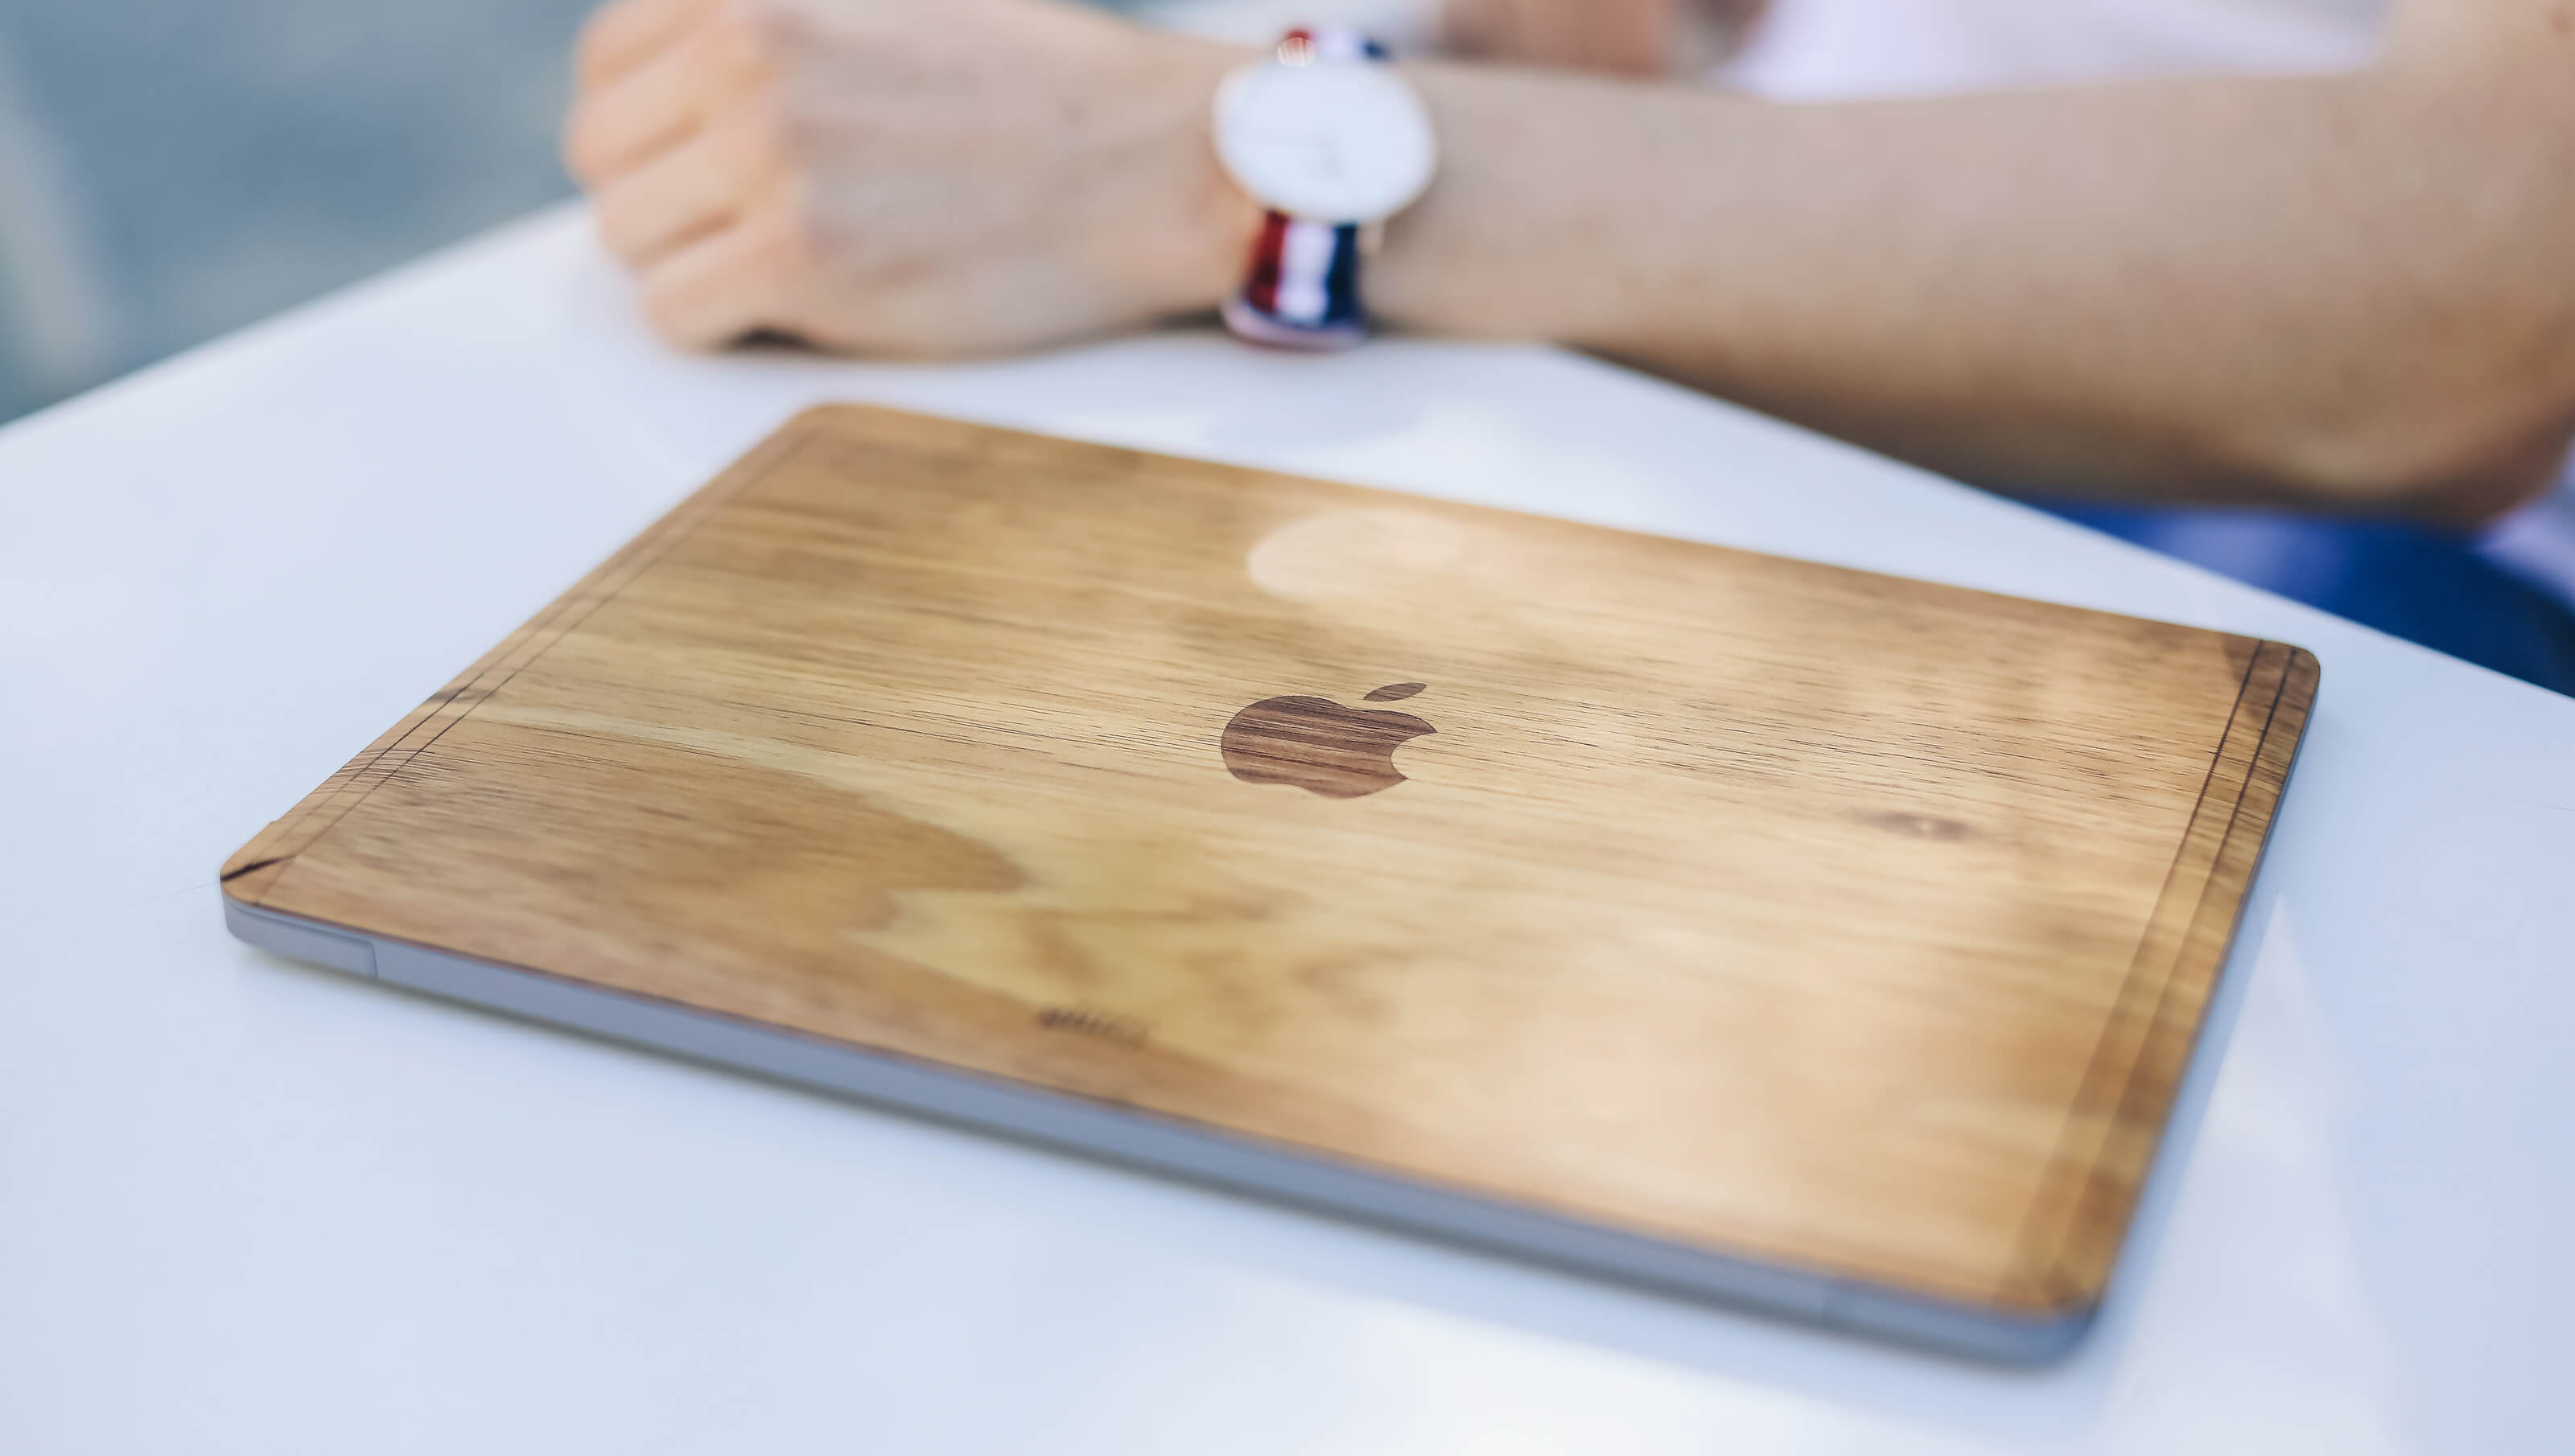 Cover for Macbook